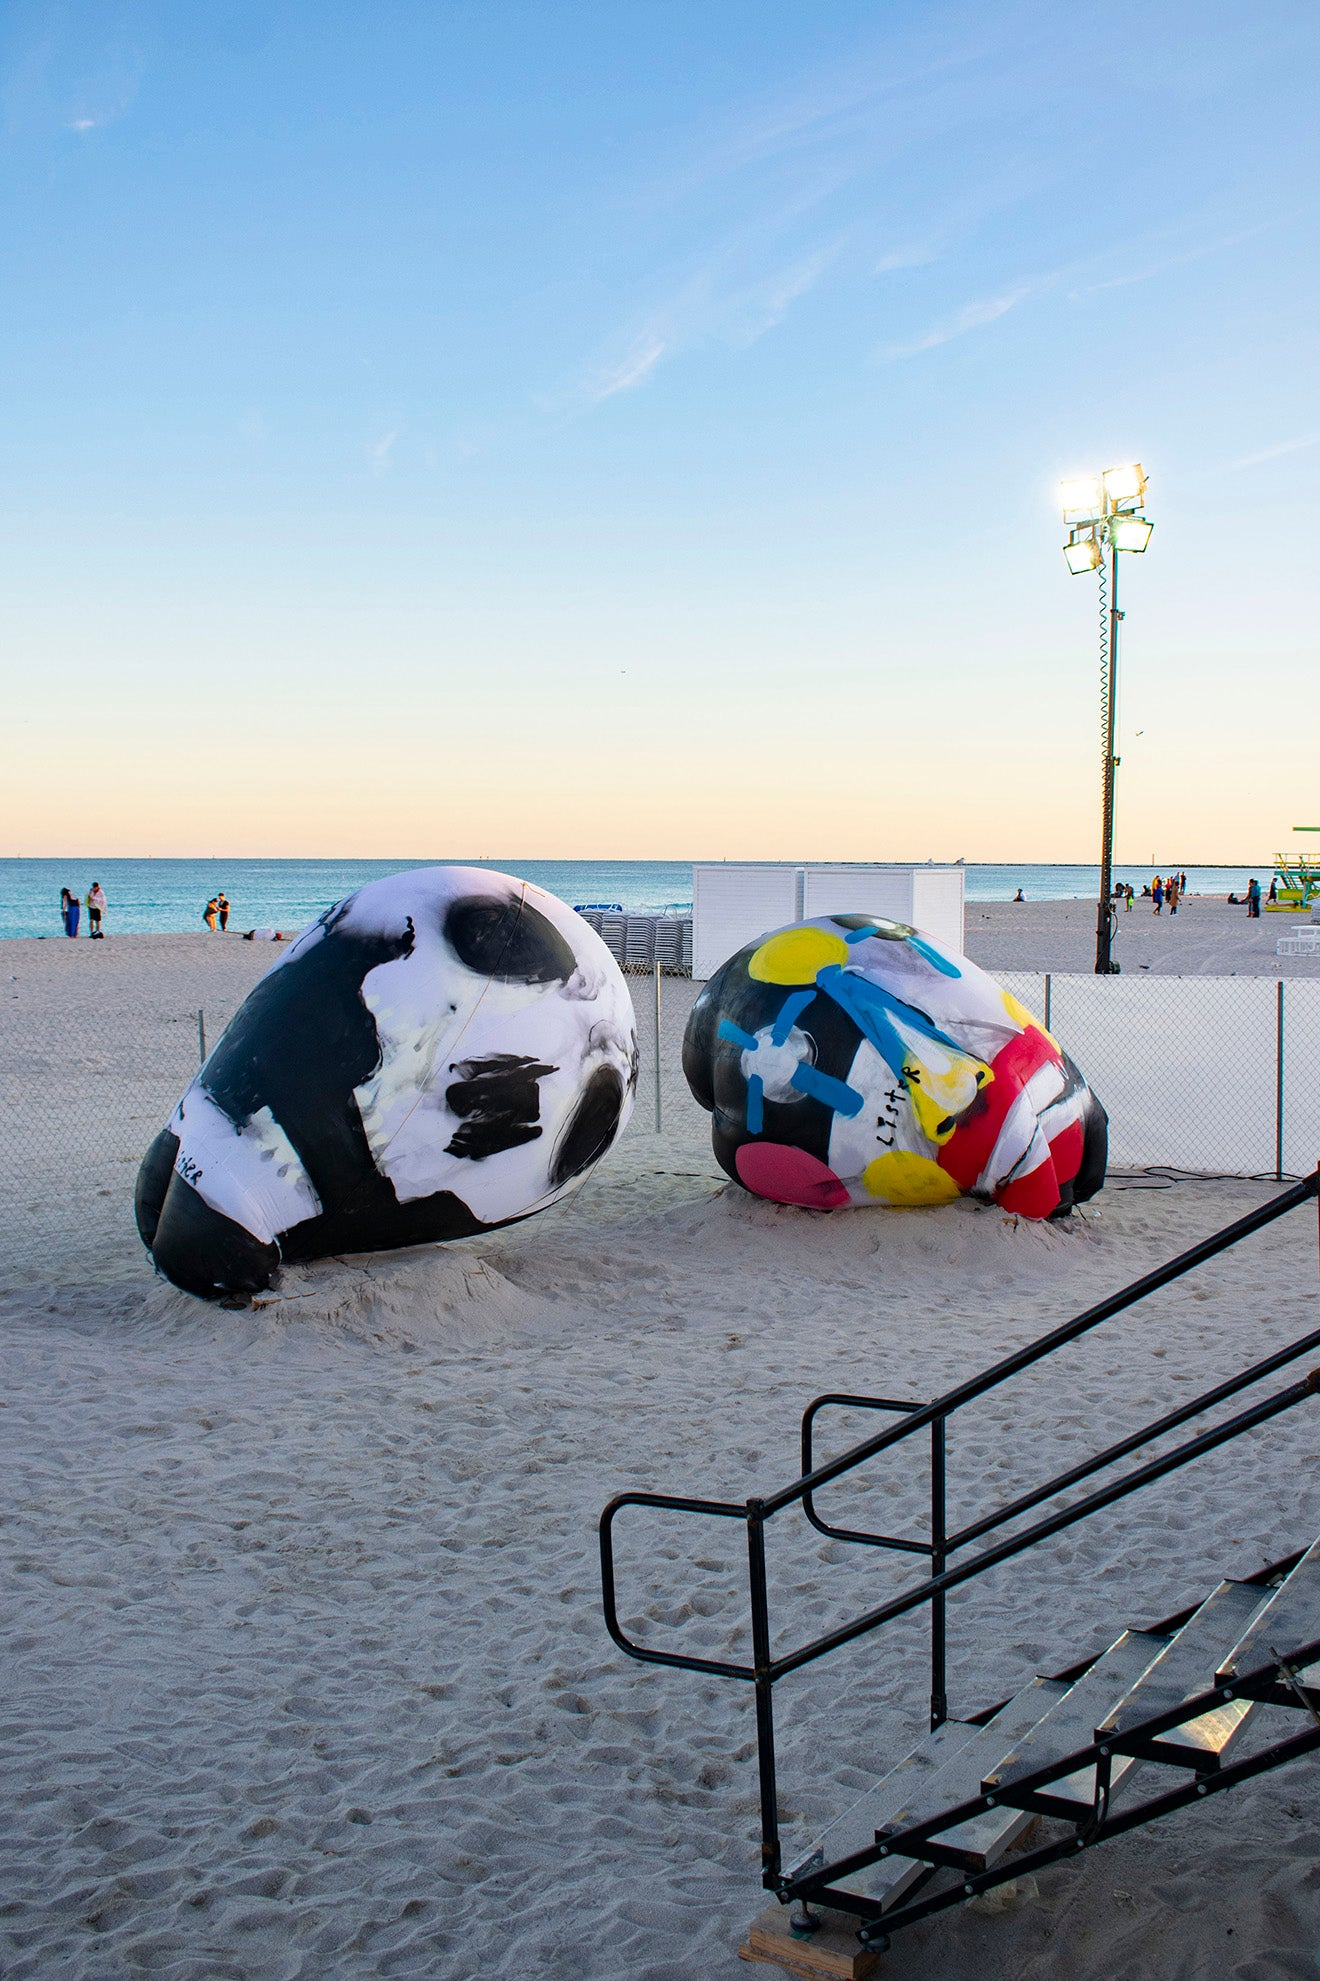 Scope Miami Beach, Miami Art Week 2019